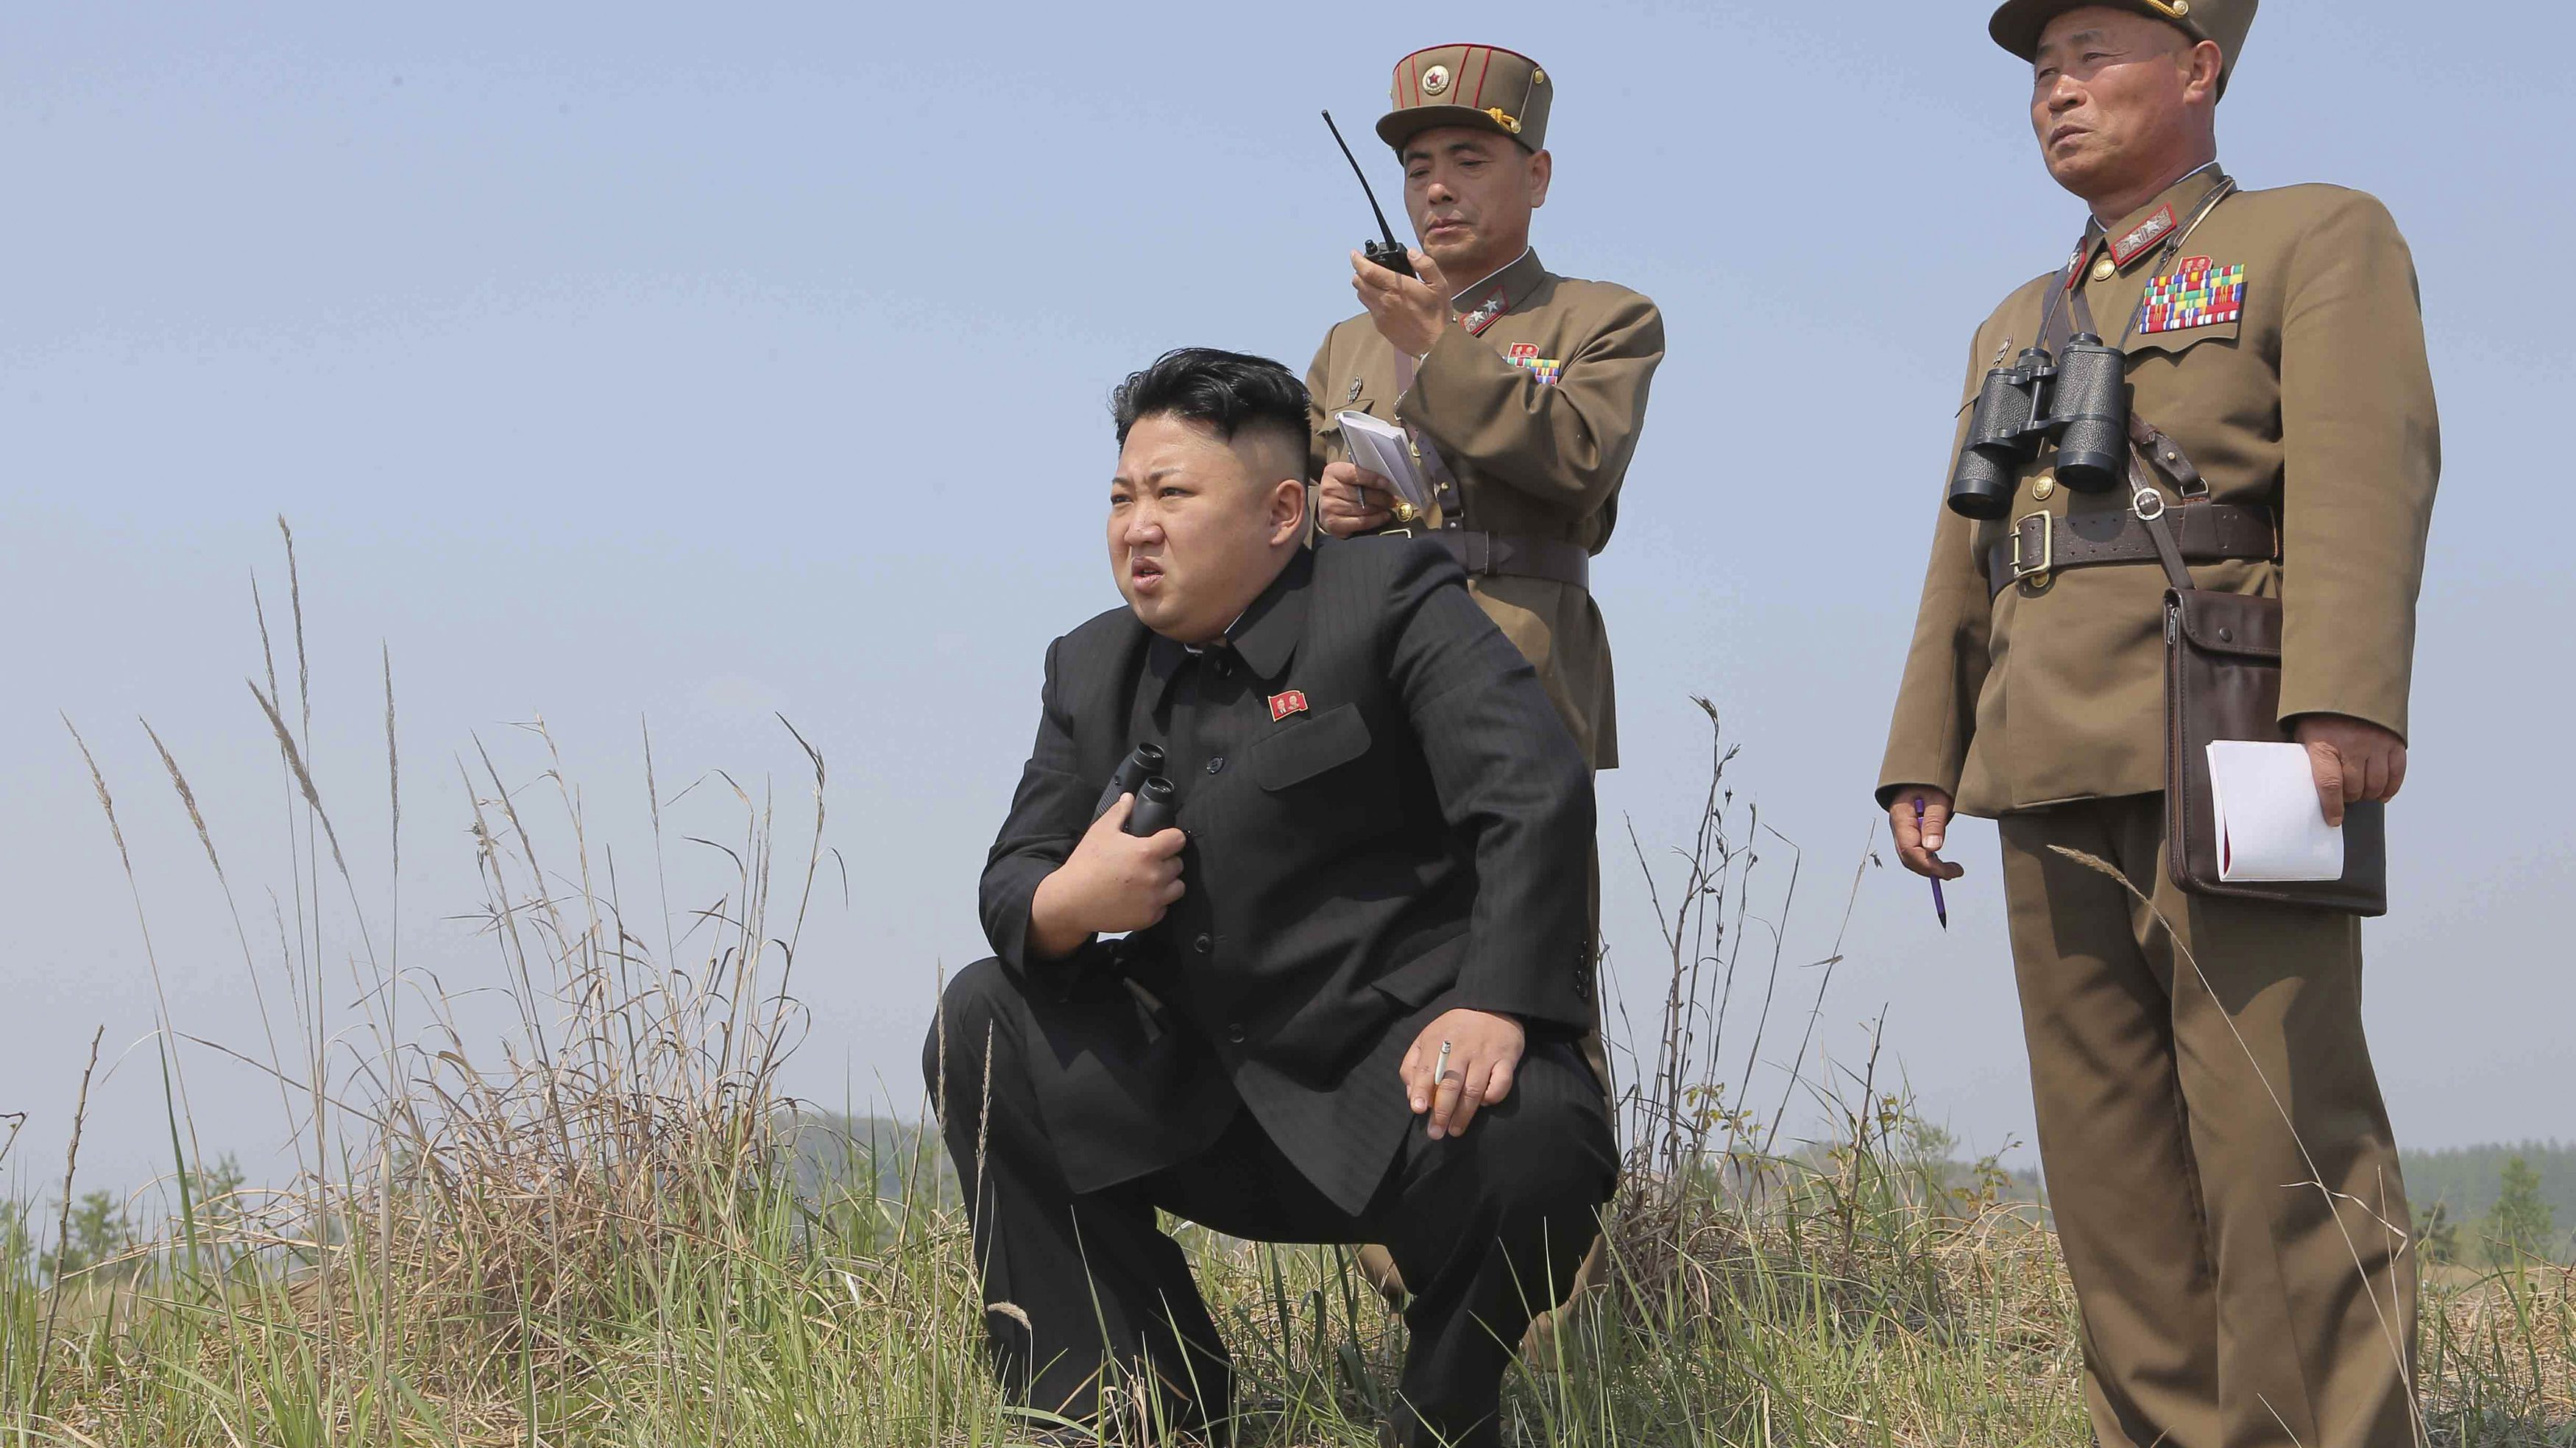 North Korean leader Kim Jong Un (C) guides the multiple-rocket launching drill of women's sub-units under KPA Unit 851, in this undated photo released by North Korea's Korean Central News Agency (KCNA) April 24, 2014.